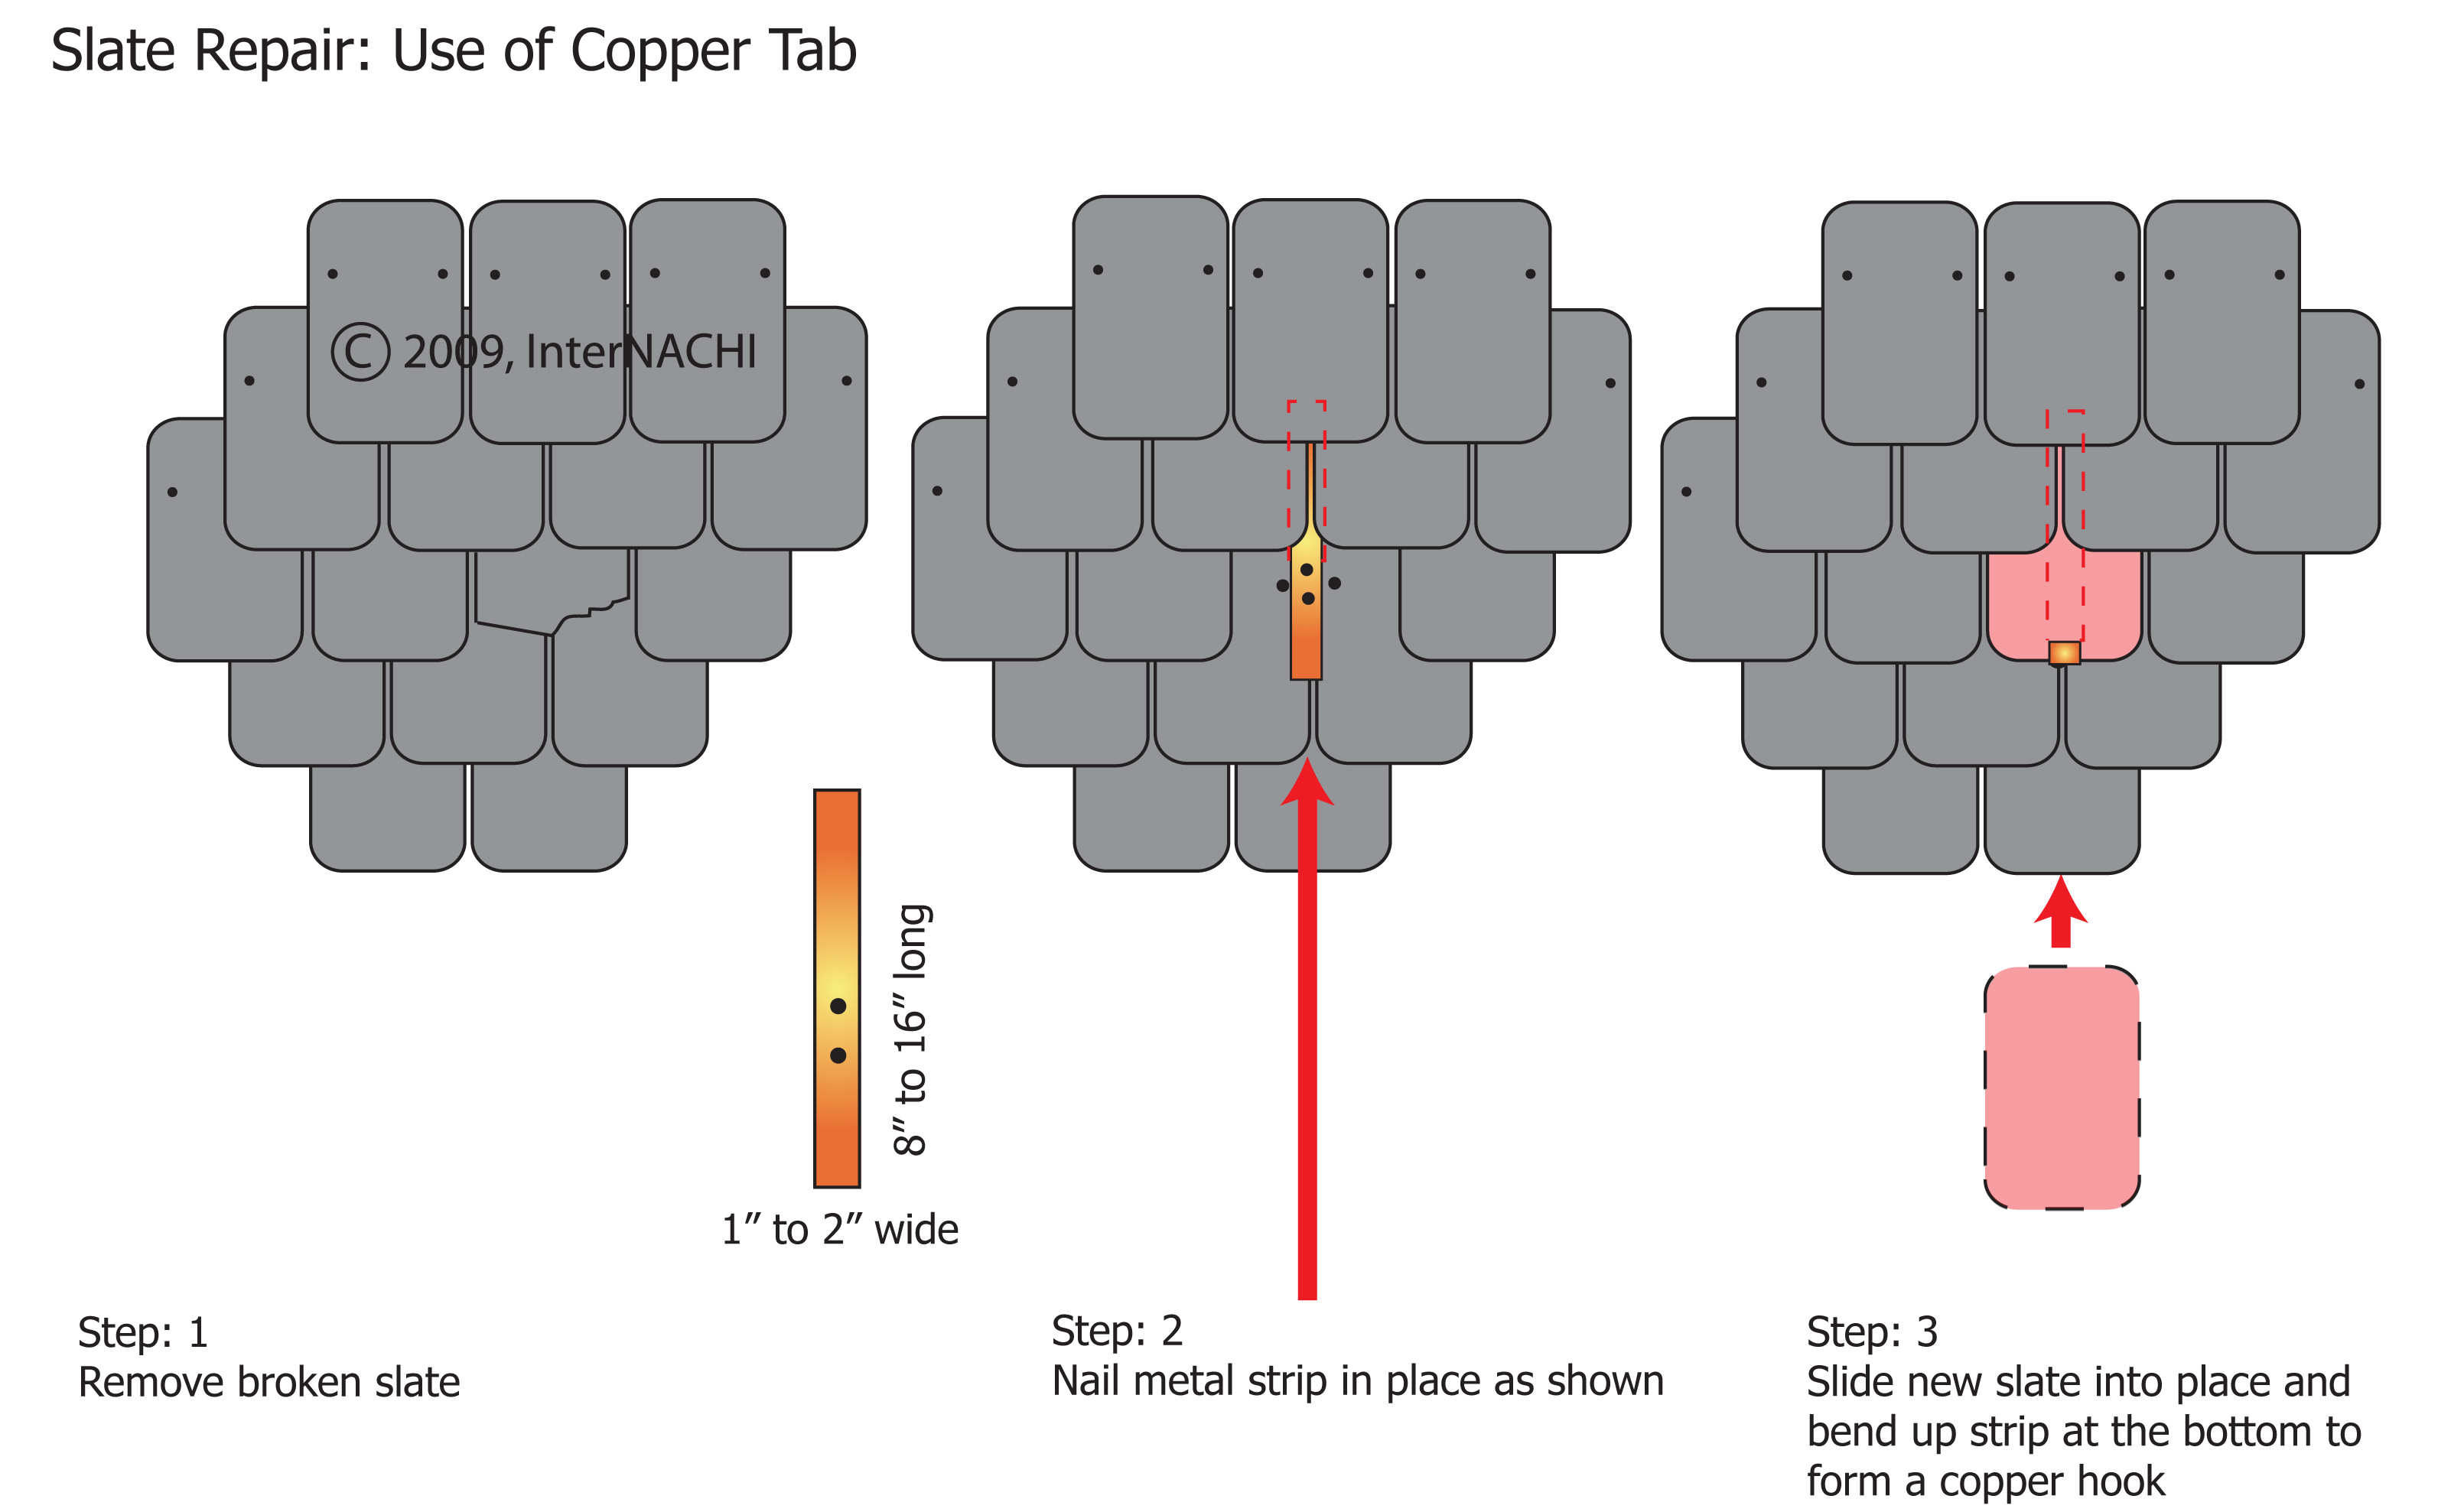 Slate roof repair with a copper tab.